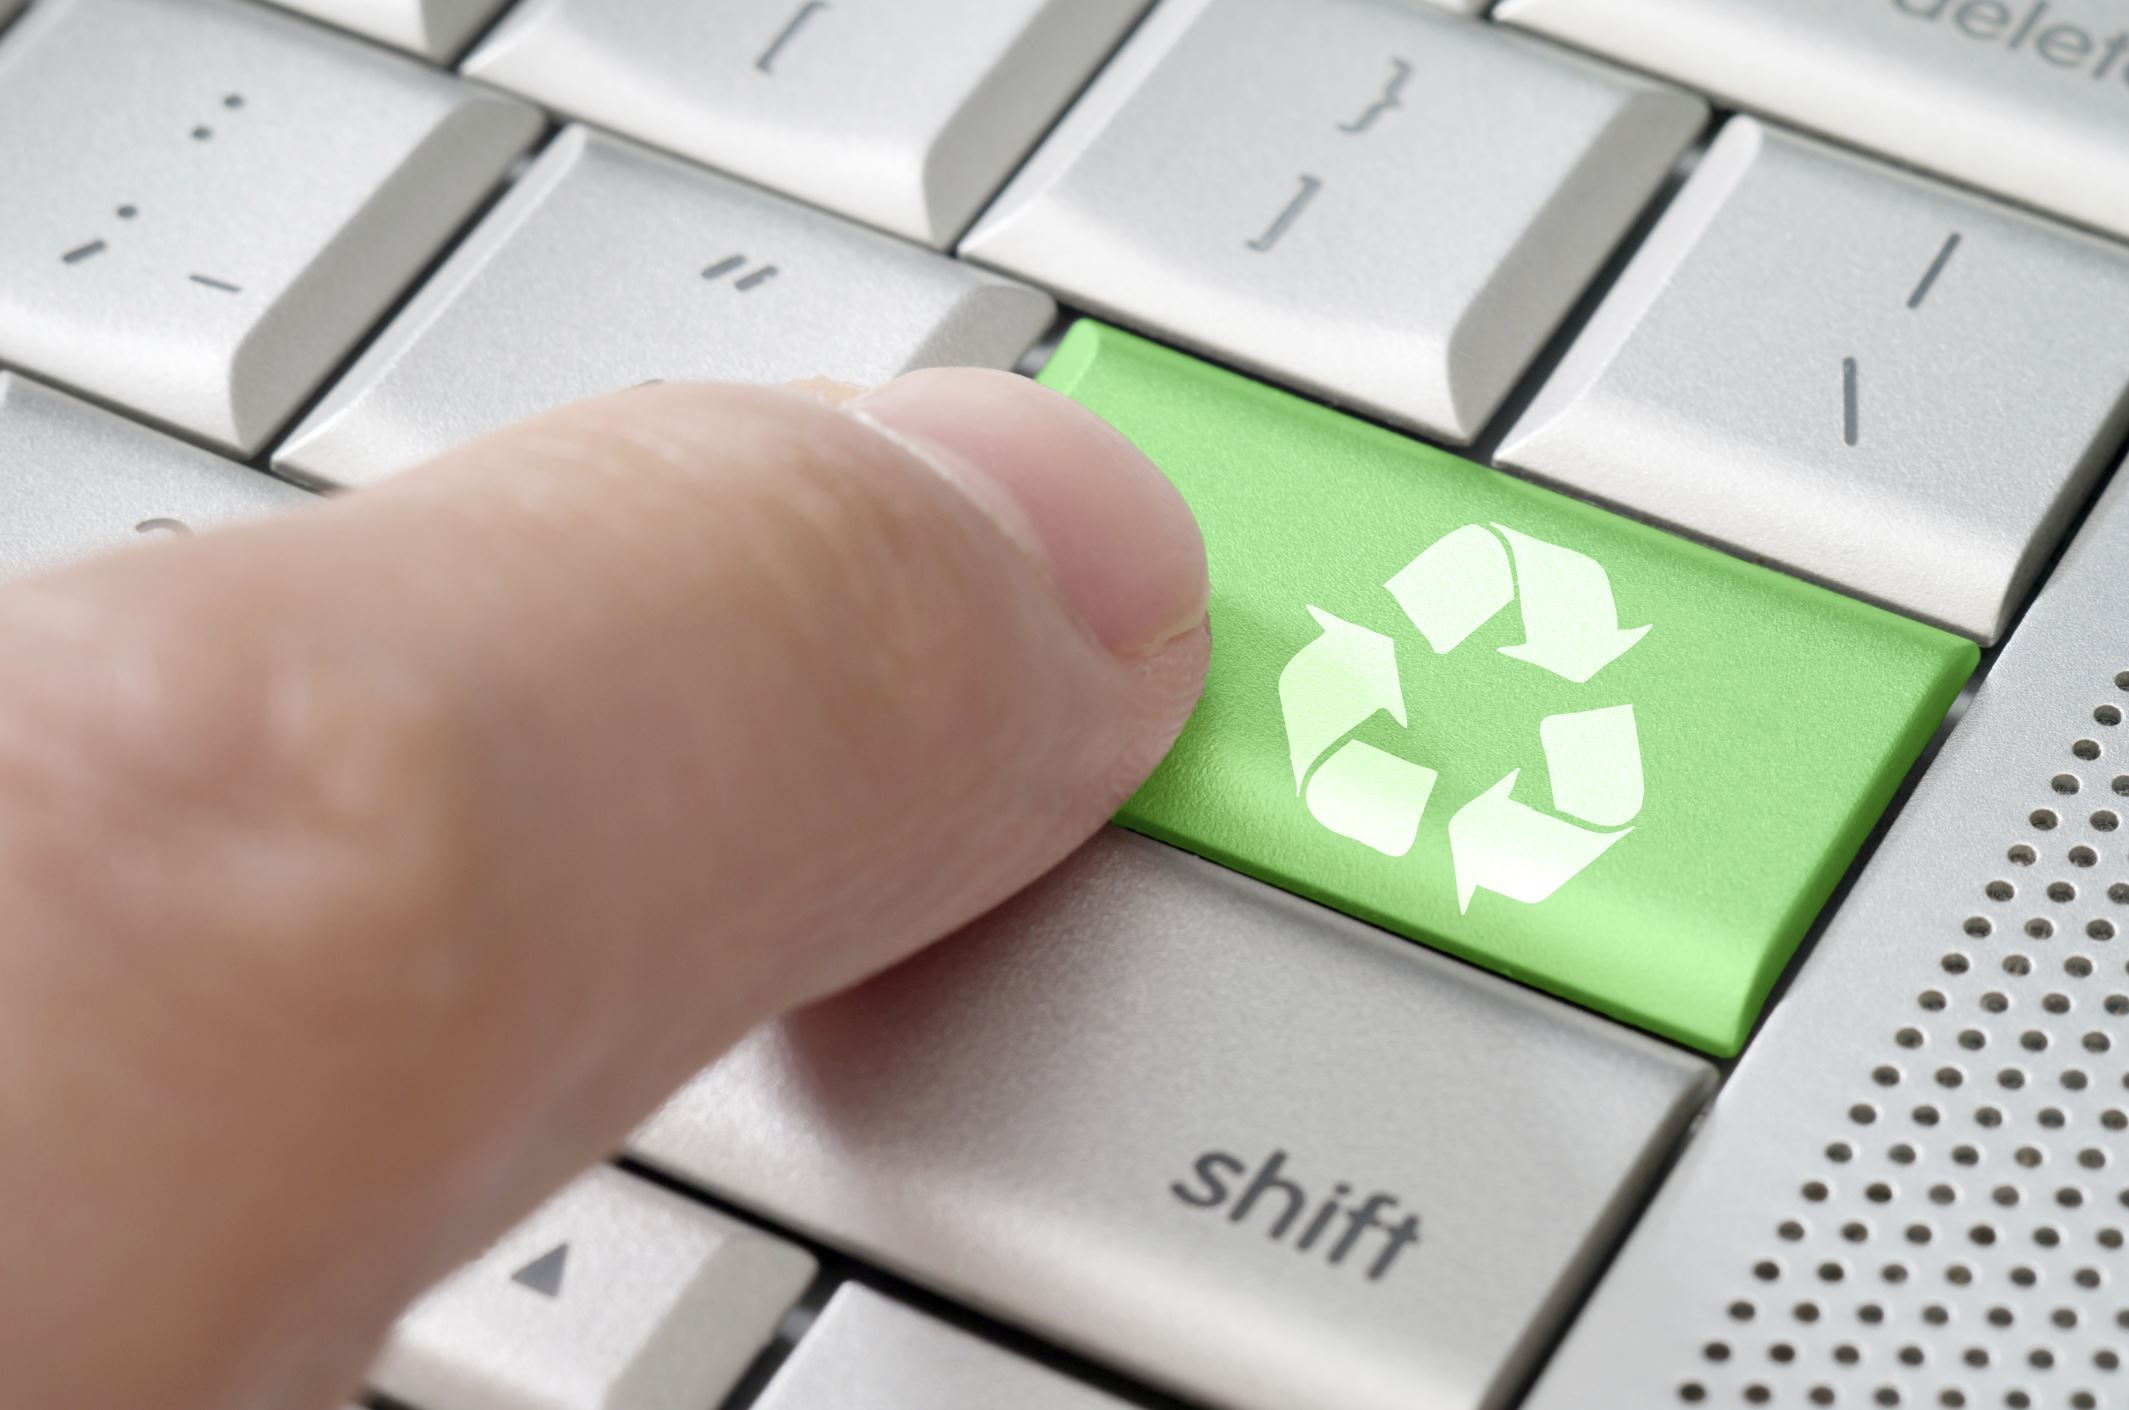 Finger Pressing Green Recycle Button on Keyboard